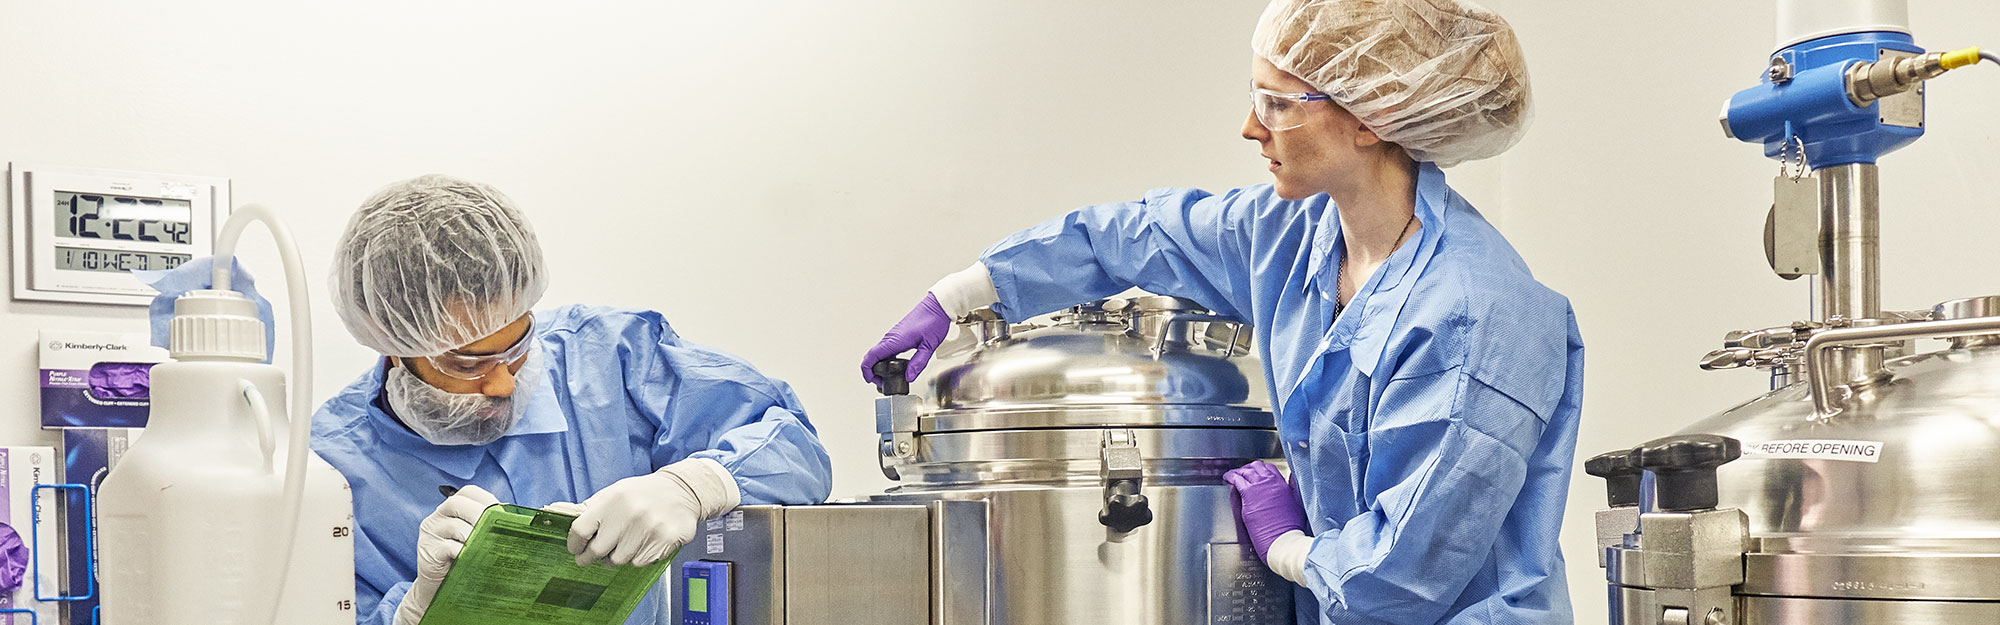 Two women in lab